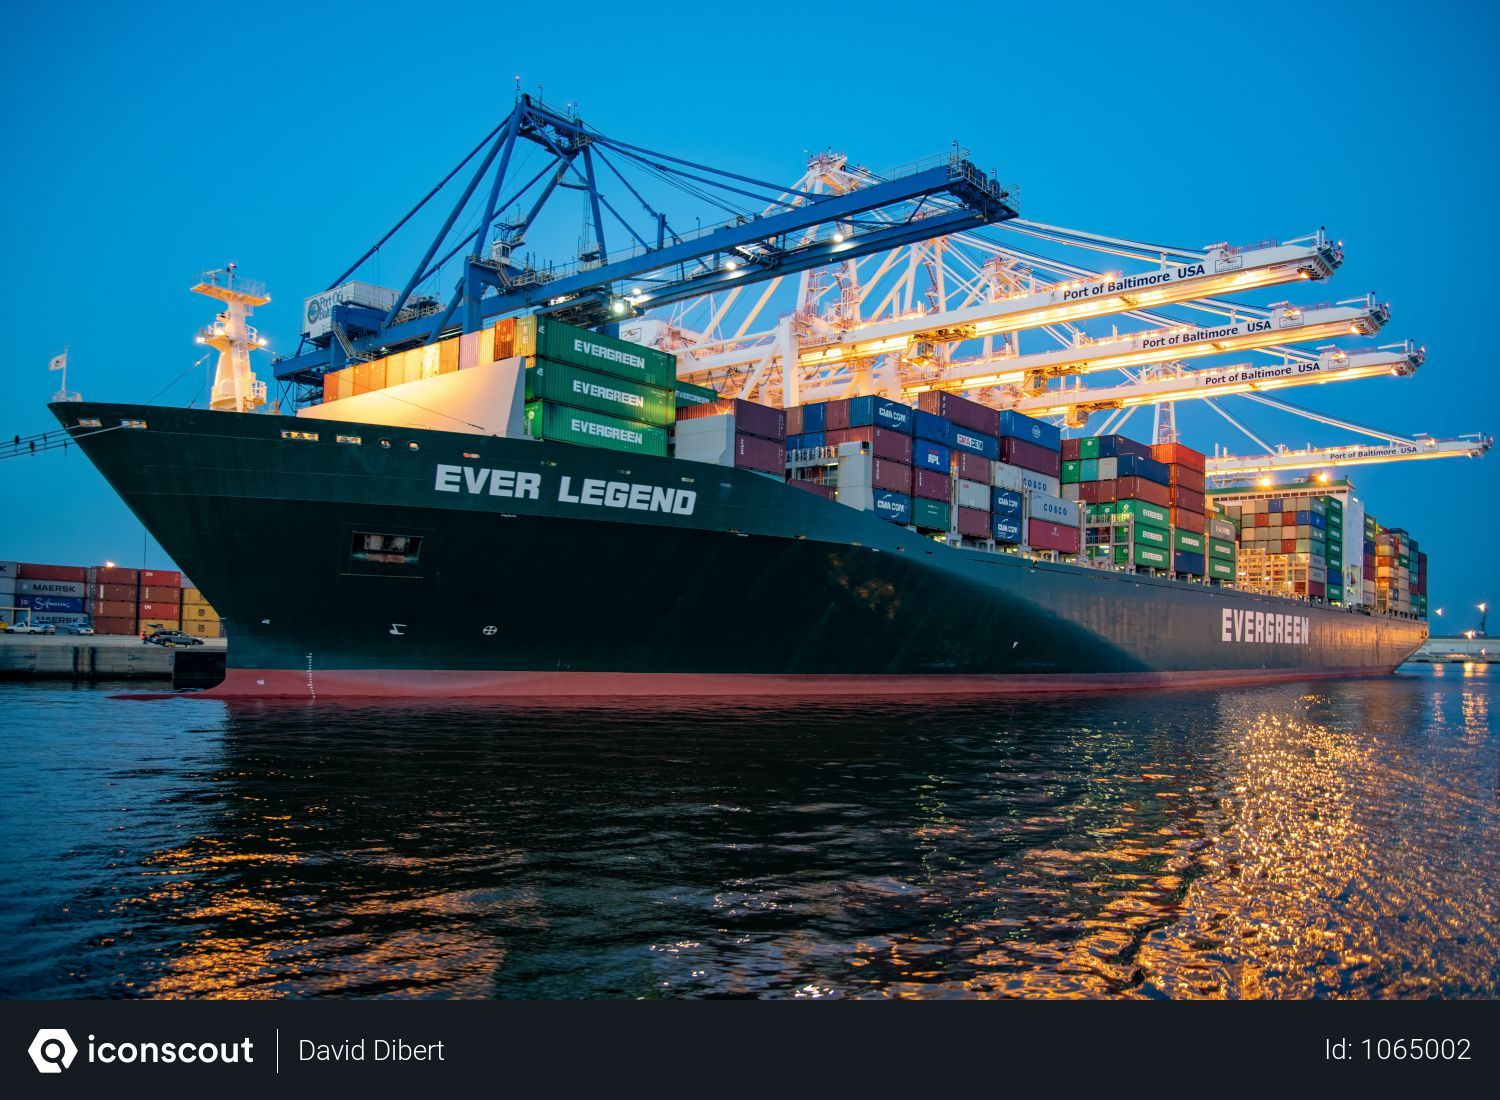 Free Cargo Ship Photo Download In Png Jpg Format In 2021 Cargo Shipping Travel Couple Photo